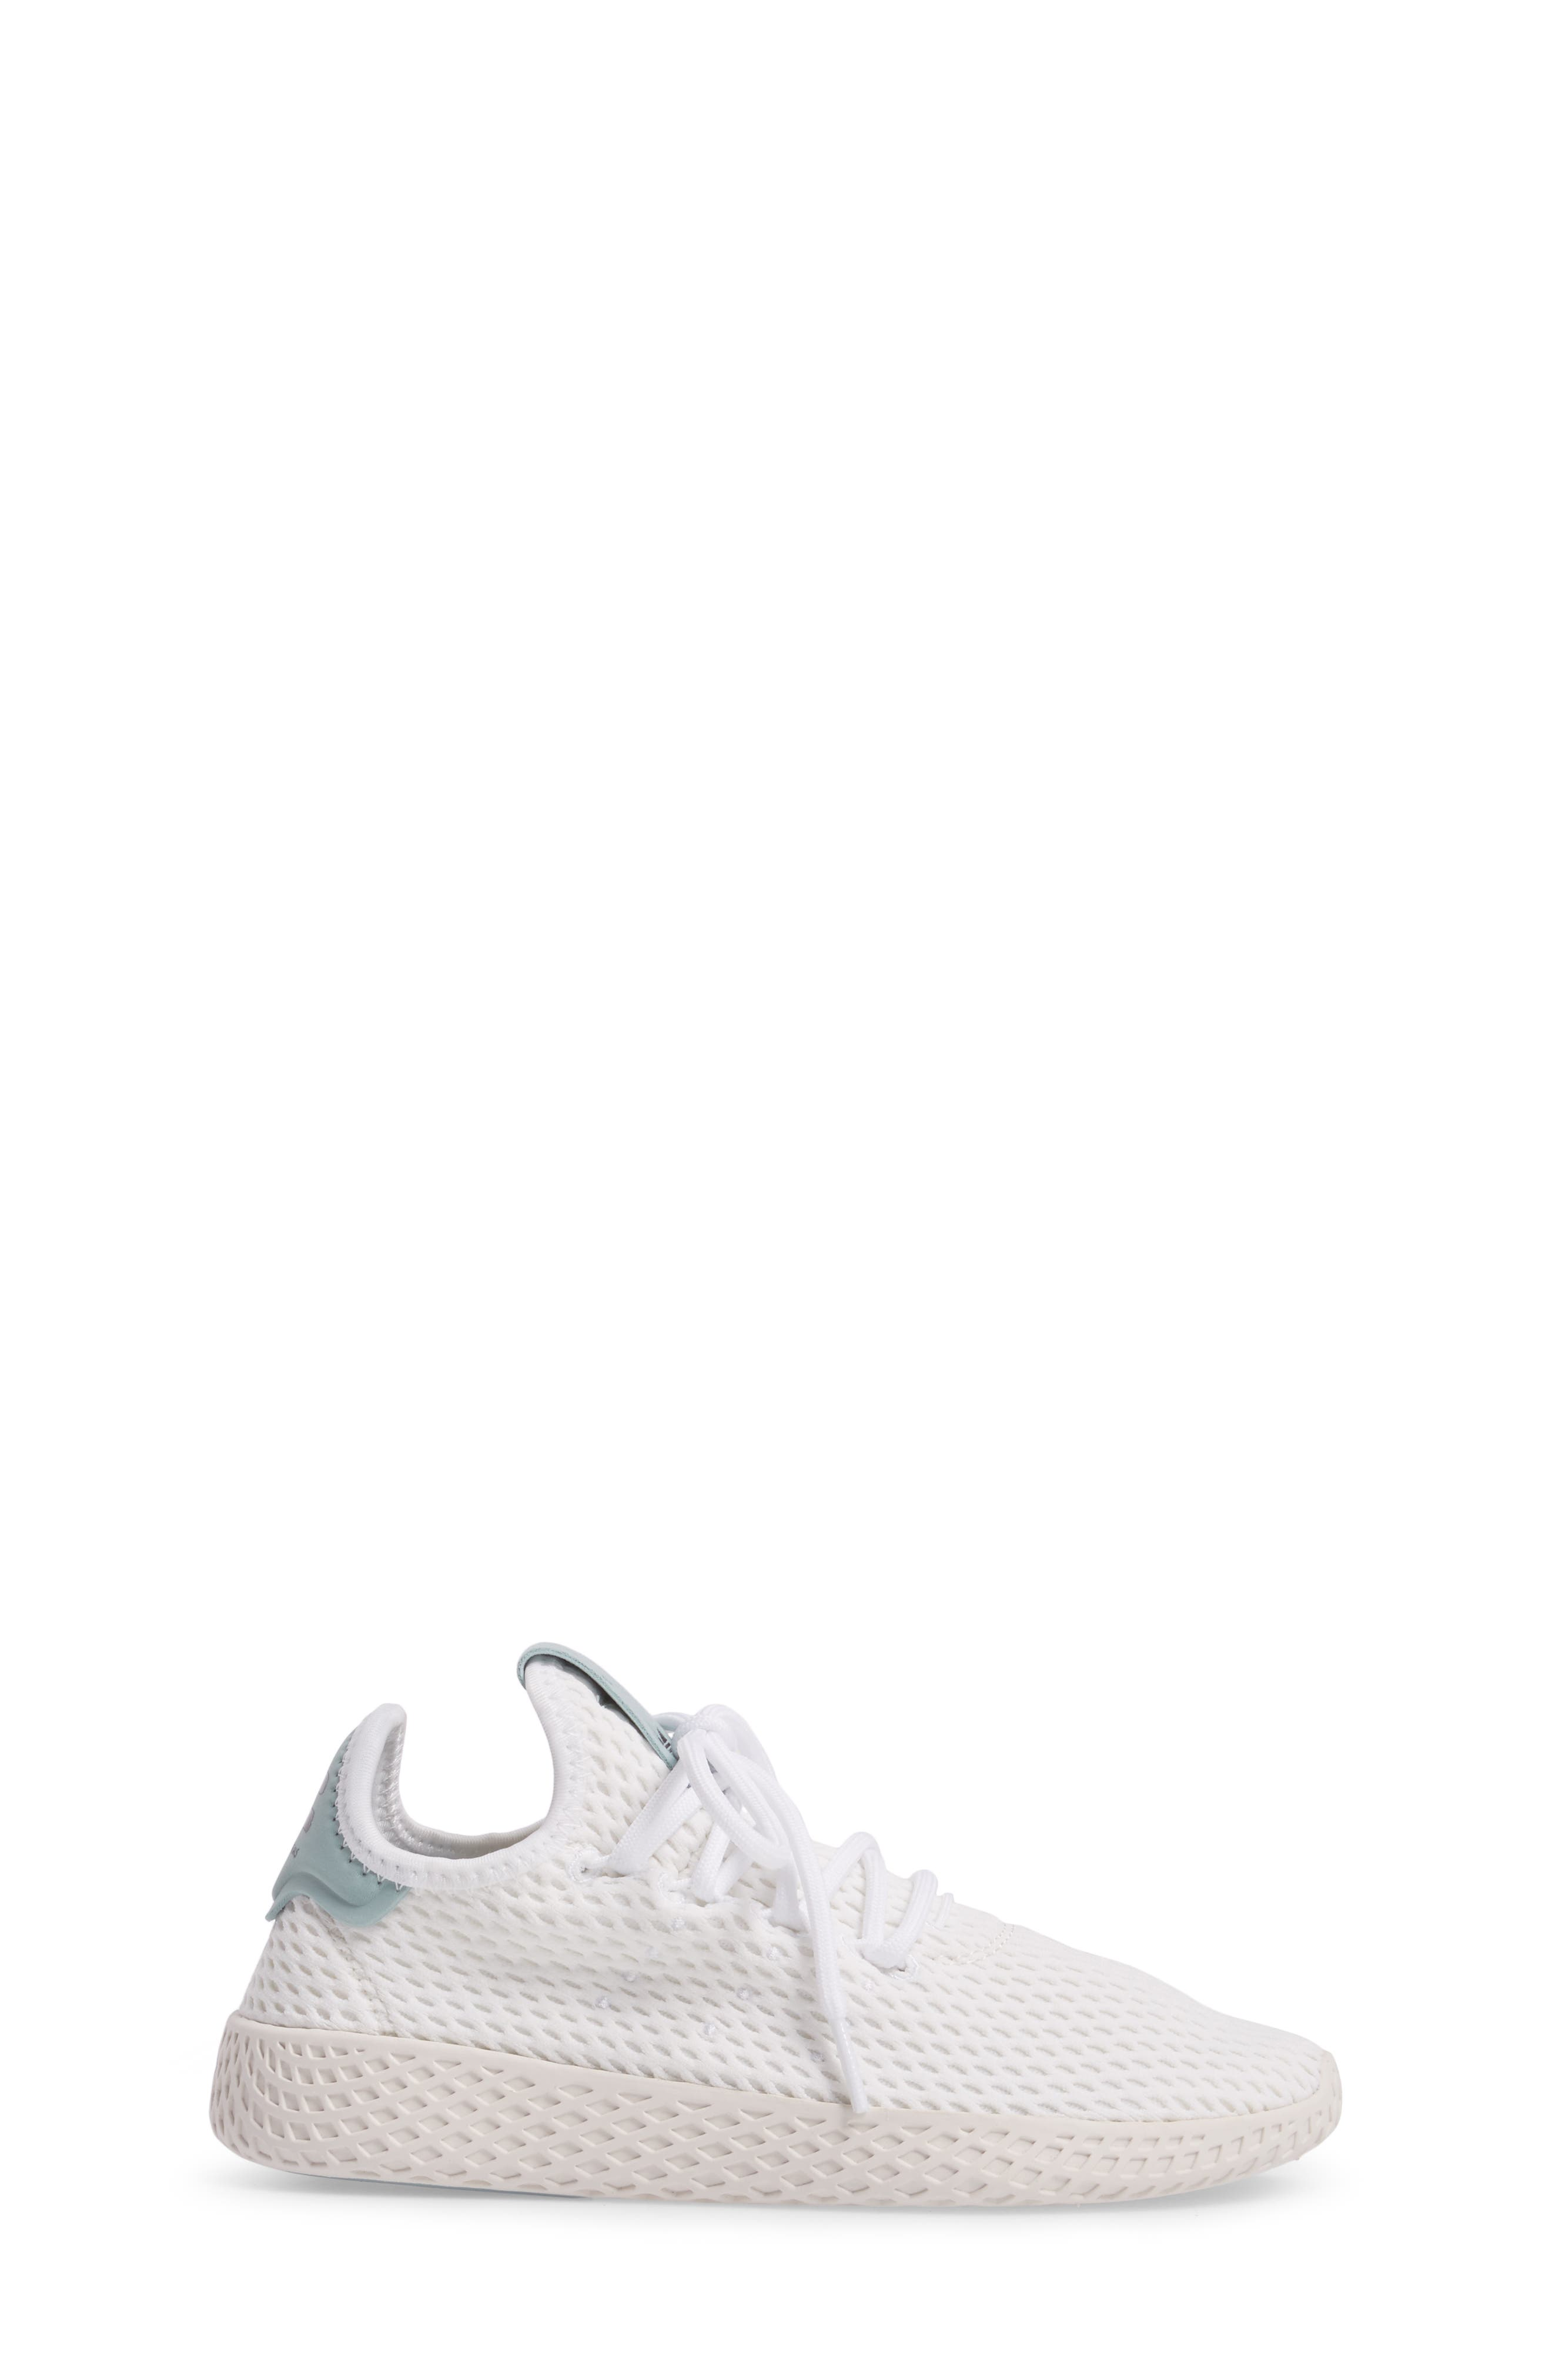 Originals x Pharrell Williams The Summers Mesh Sneaker,                             Alternate thumbnail 3, color,                             Footwear White/ Linen Green